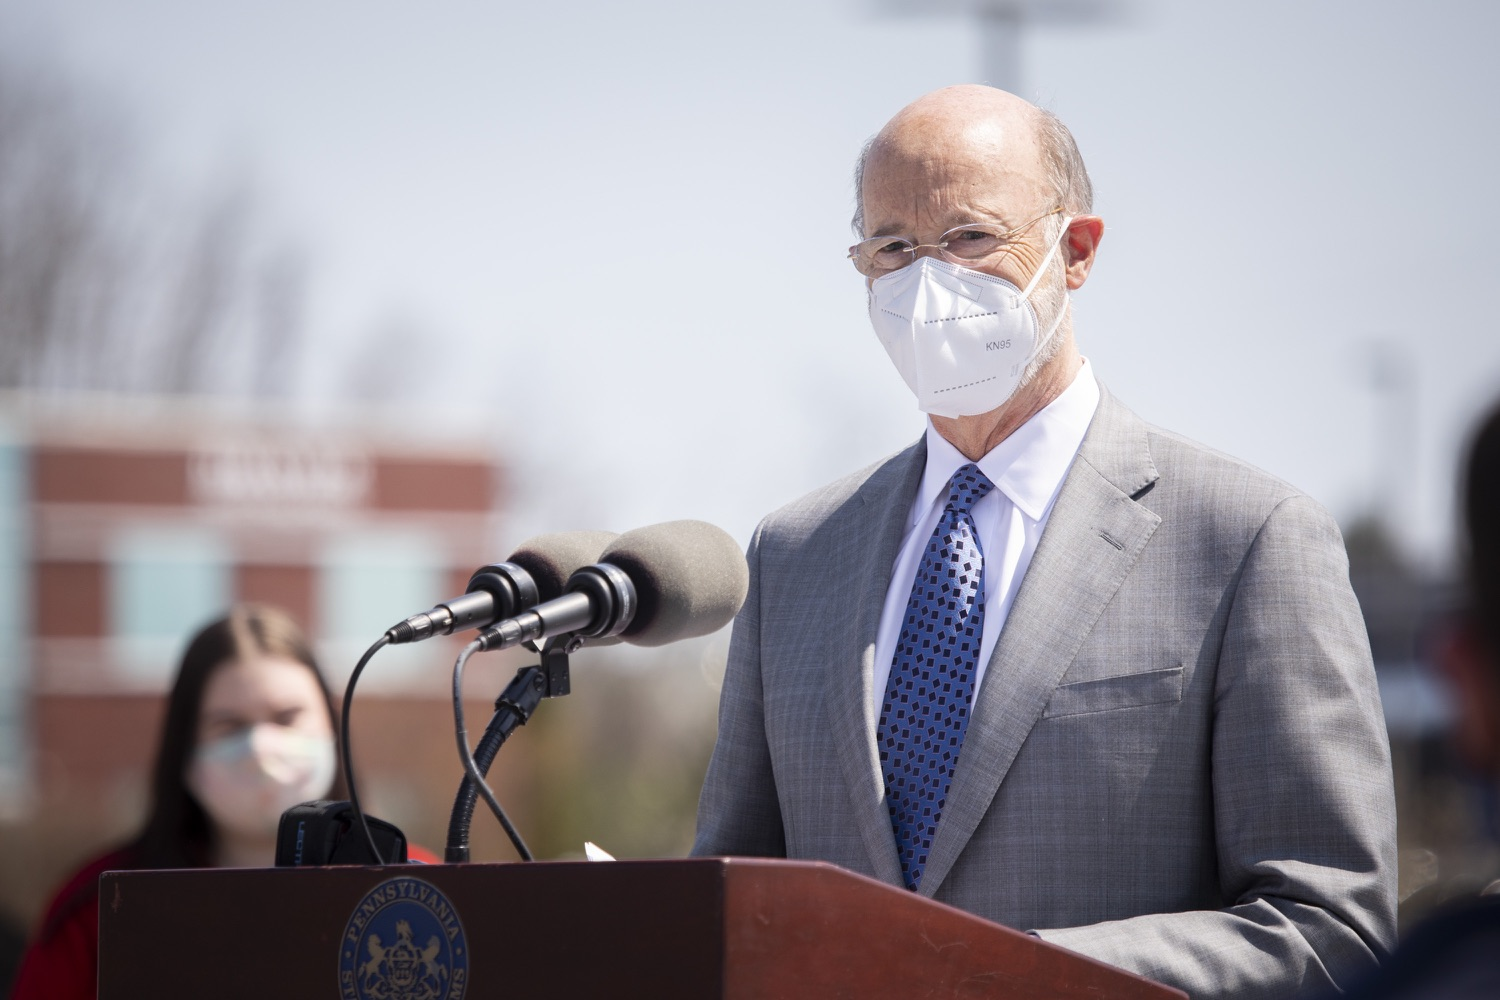 """<a href=""""https://filesource.wostreaming.net/commonwealthofpa/photo/18654_gov_vaccineeligibility_dz_015.jpg"""" target=""""_blank"""">⇣Download Photo<br></a>Pennsylvania Governor Tom Wolf speaking to the press.  Gov. Tom Wolf visited Weis Markets in Enola, Cumberland County, to recognize the heroic efforts of Pennsylvania's grocery store workers, who are now eligible for the COVID-19 vaccine.  The governor expressed his gratitude to Pennsylvania's 180,000 grocery store workers, who suddenly became frontline workers as the state took critical steps to mitigate the spread of COVID-19. Grocery stores were deemed life-sustaining businesses, and these employees put their lives at risk to ensure their stores remained open to the public. APRIL 06, 2021 - ENOLA, PA.."""